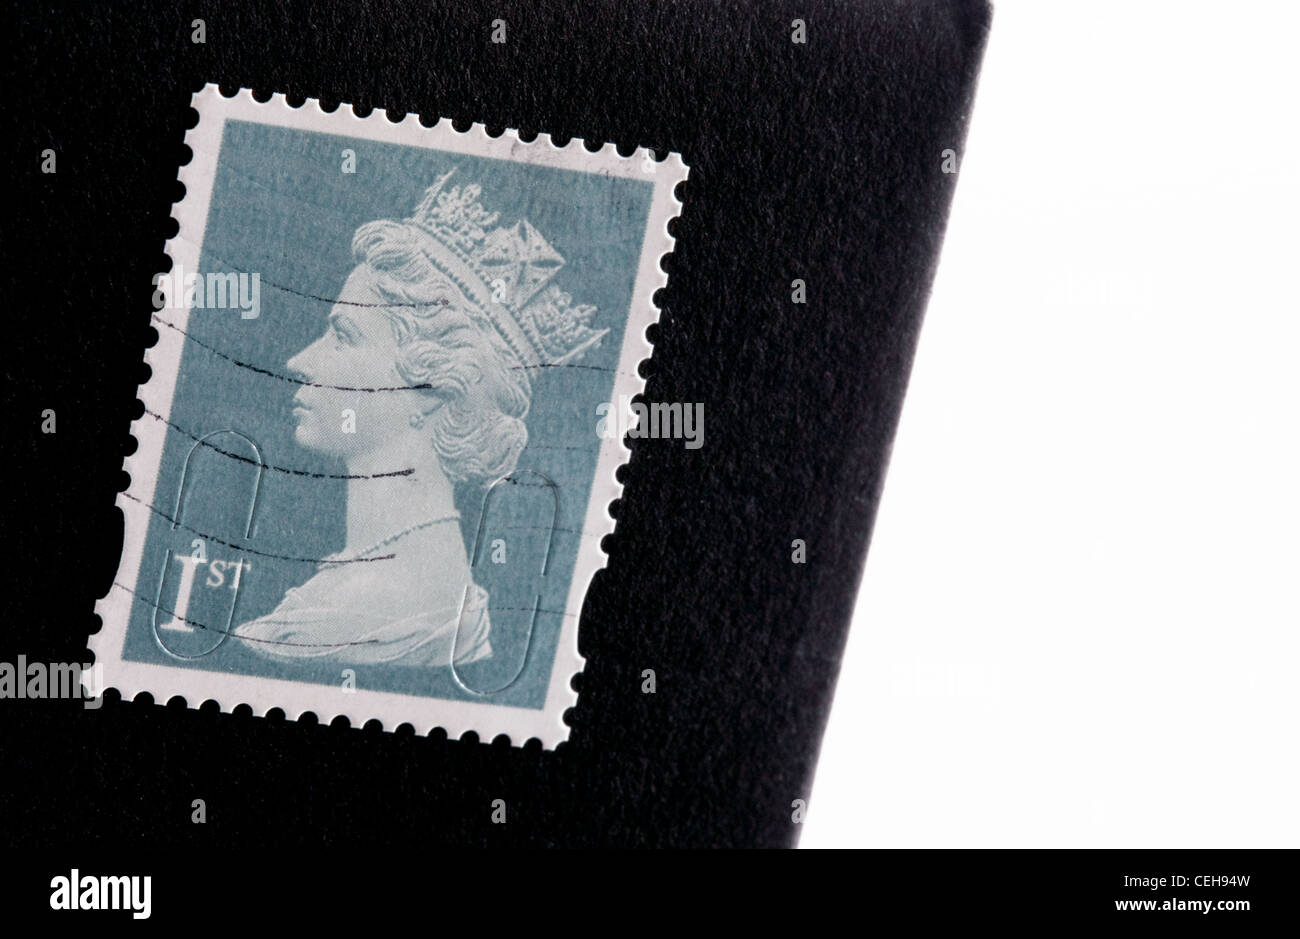 British first class stamp, February 2012 - Stock Image